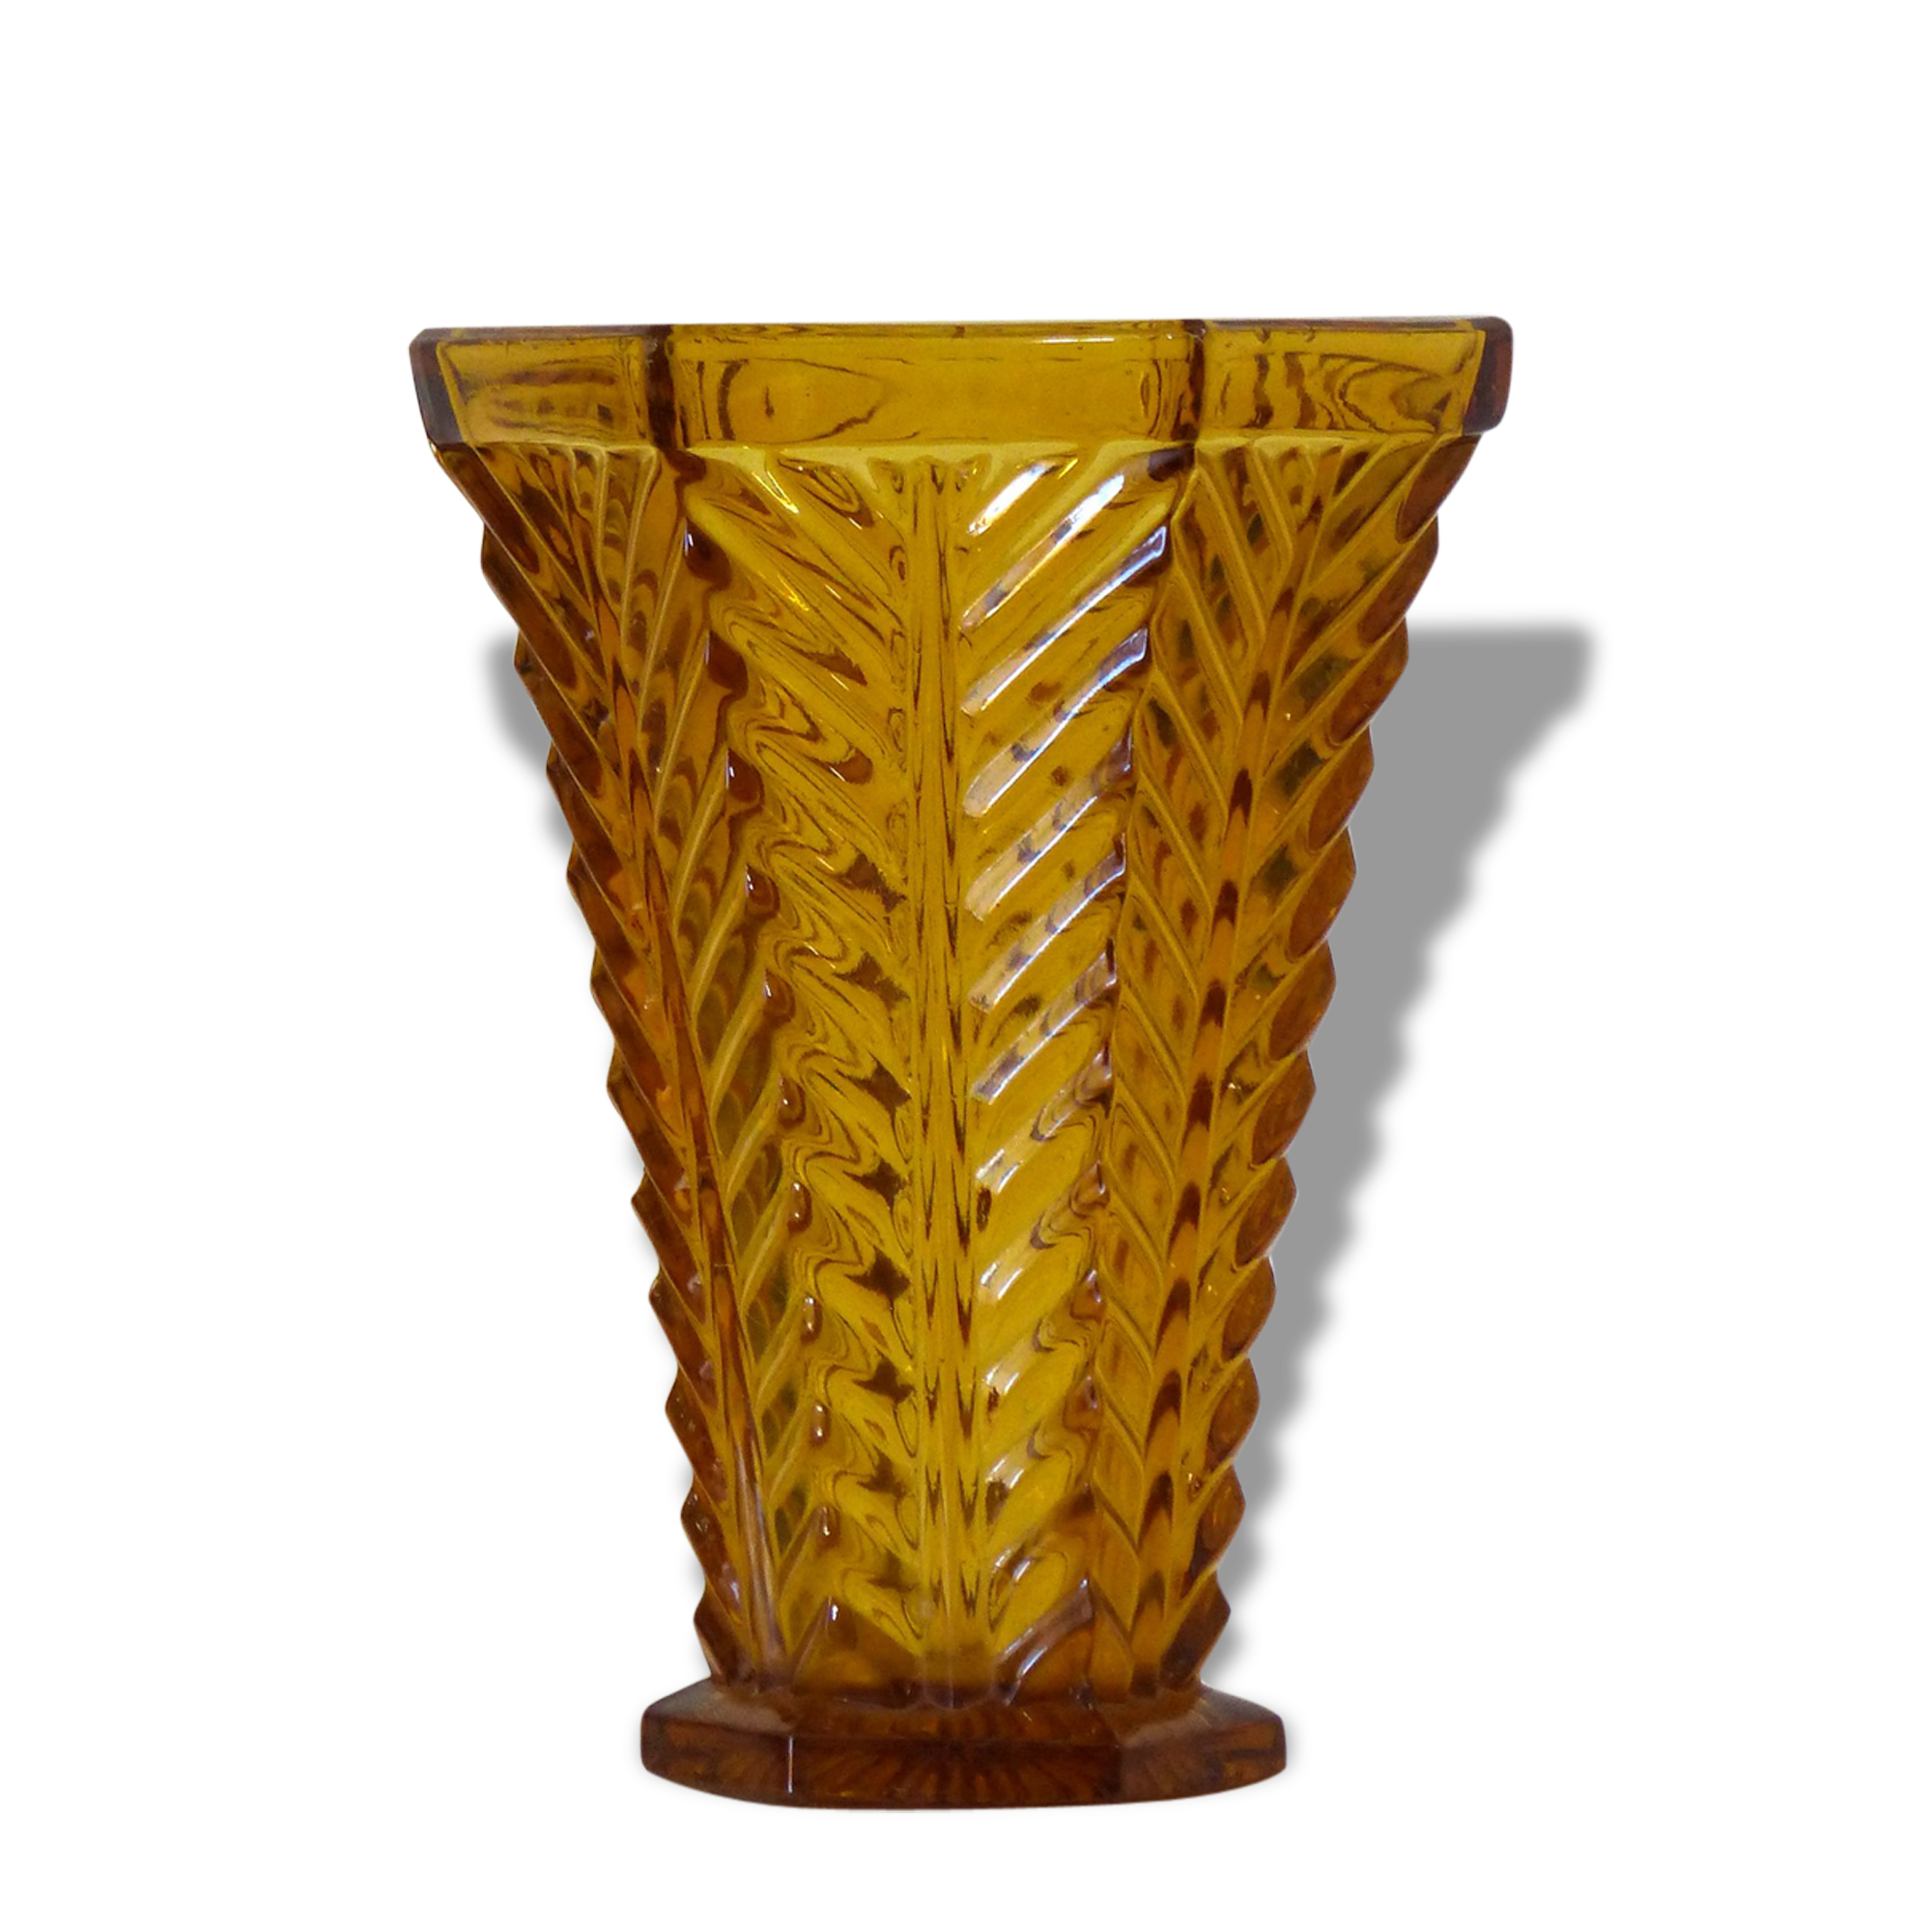 Deco dans grand vase en verre art deco daum nany superbe grand vase en verre sign lorrain - Grand vase transparent ...